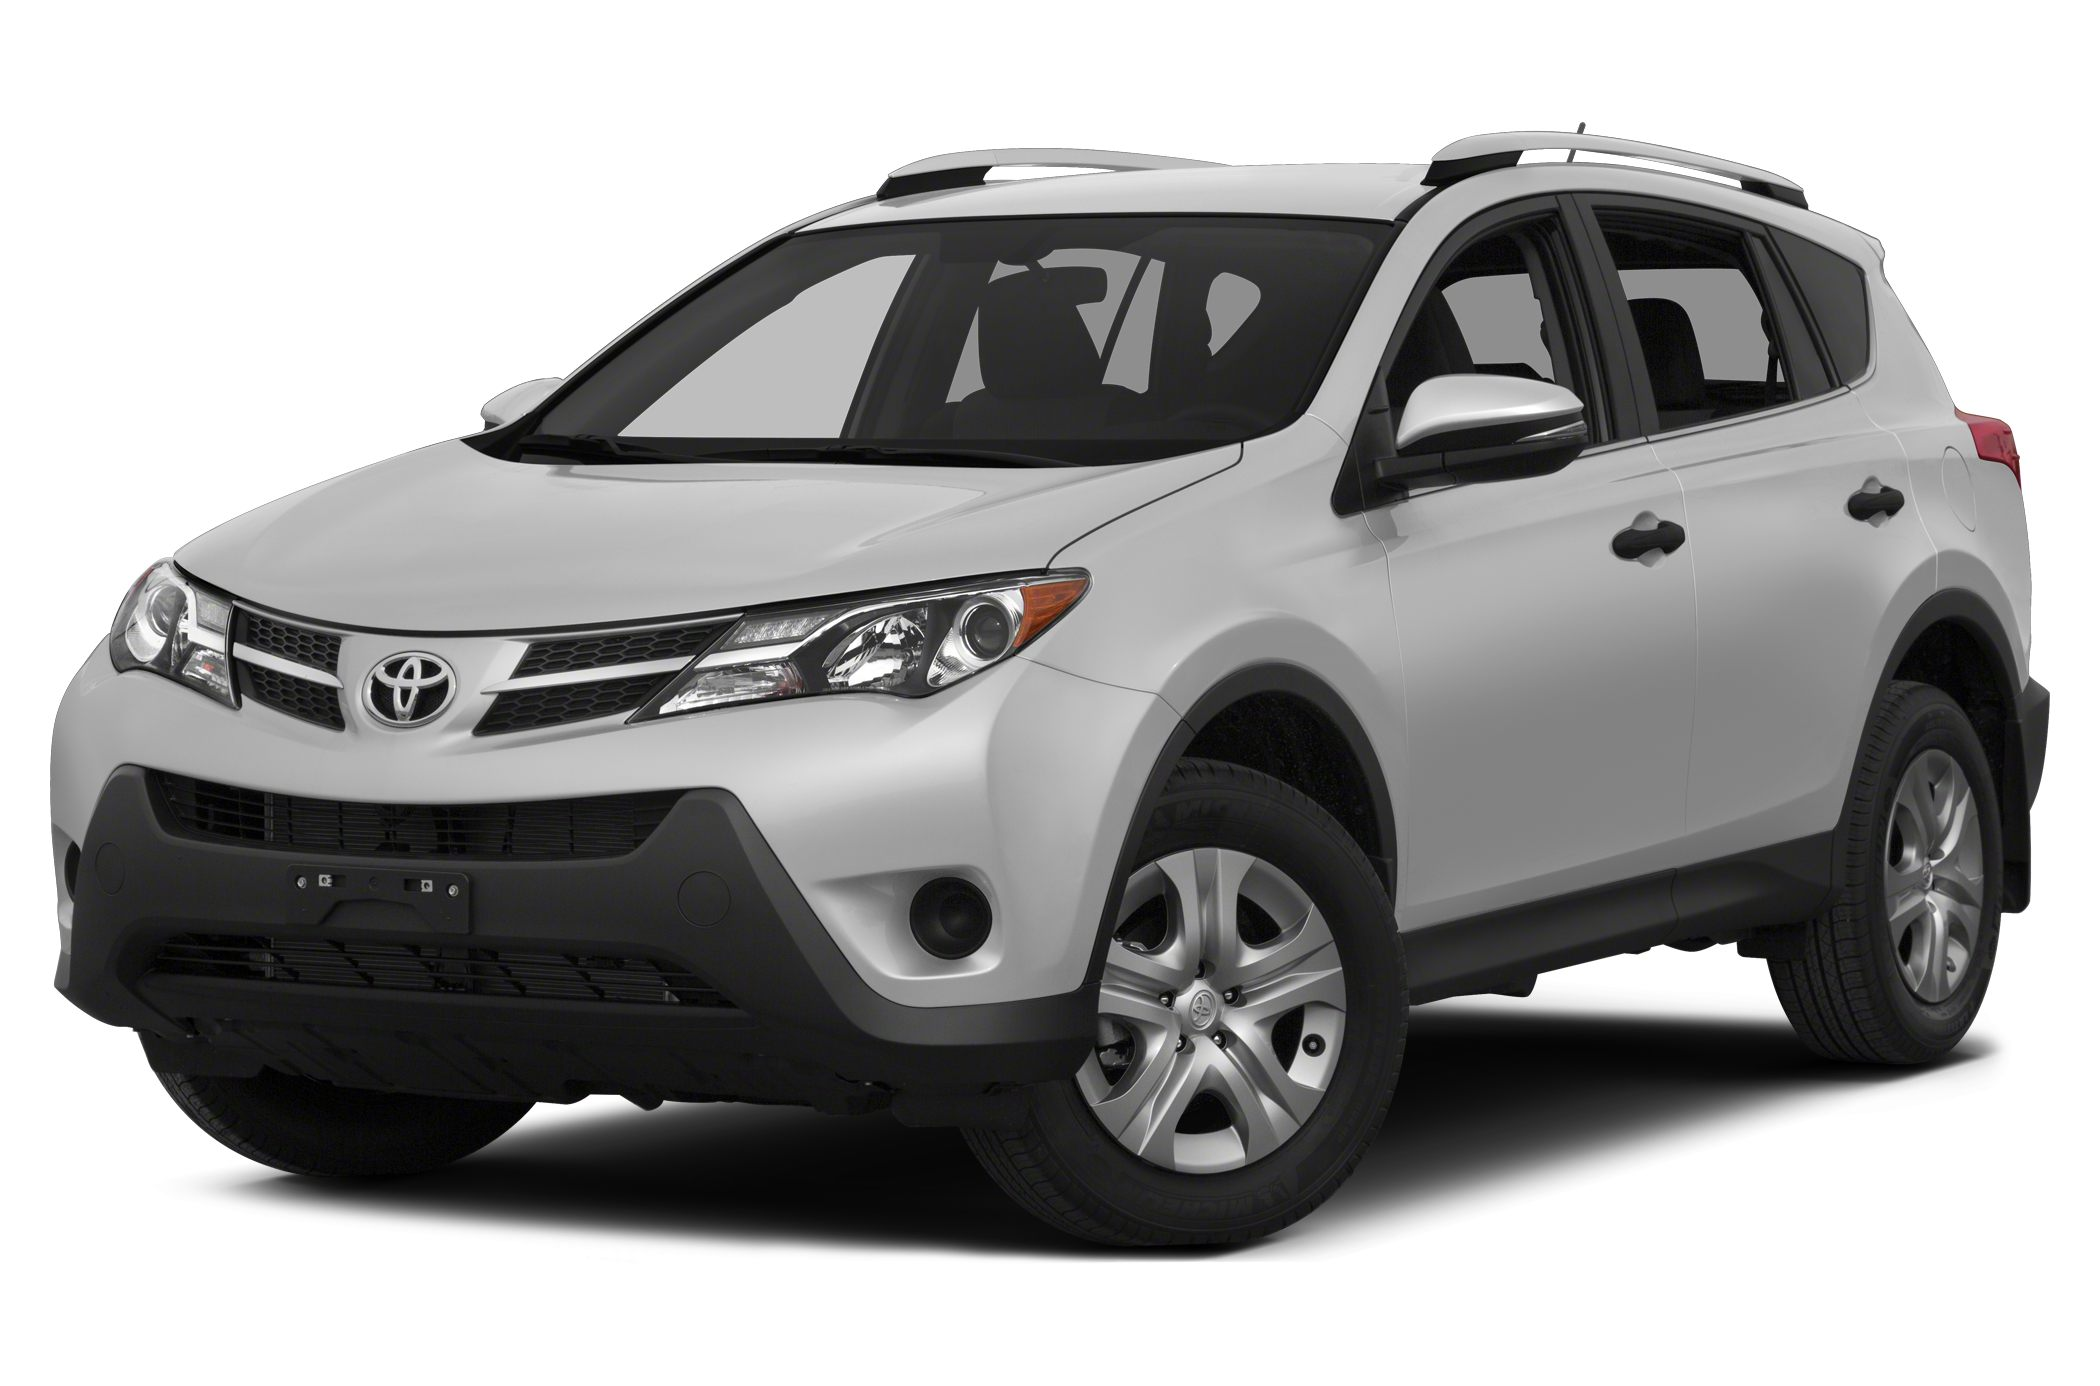 2015 Toyota RAV4 LE SUV for sale in Philadelphia for $26,430 with 0 miles